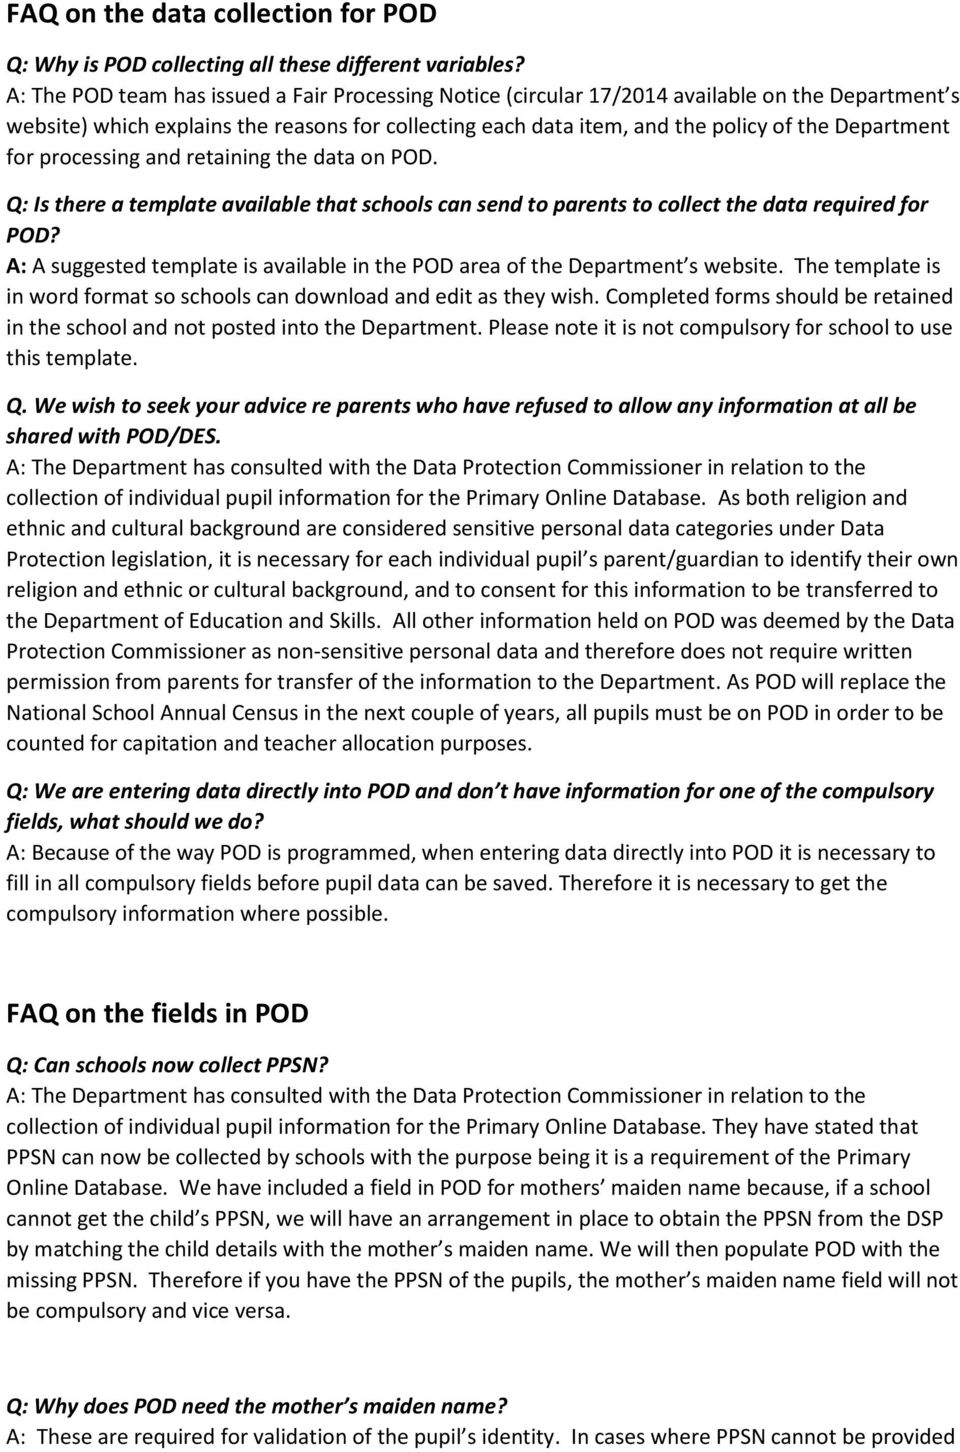 for processing and retaining the data on POD. Q: Is there a template available that schools can send to parents to collect the data required for POD?